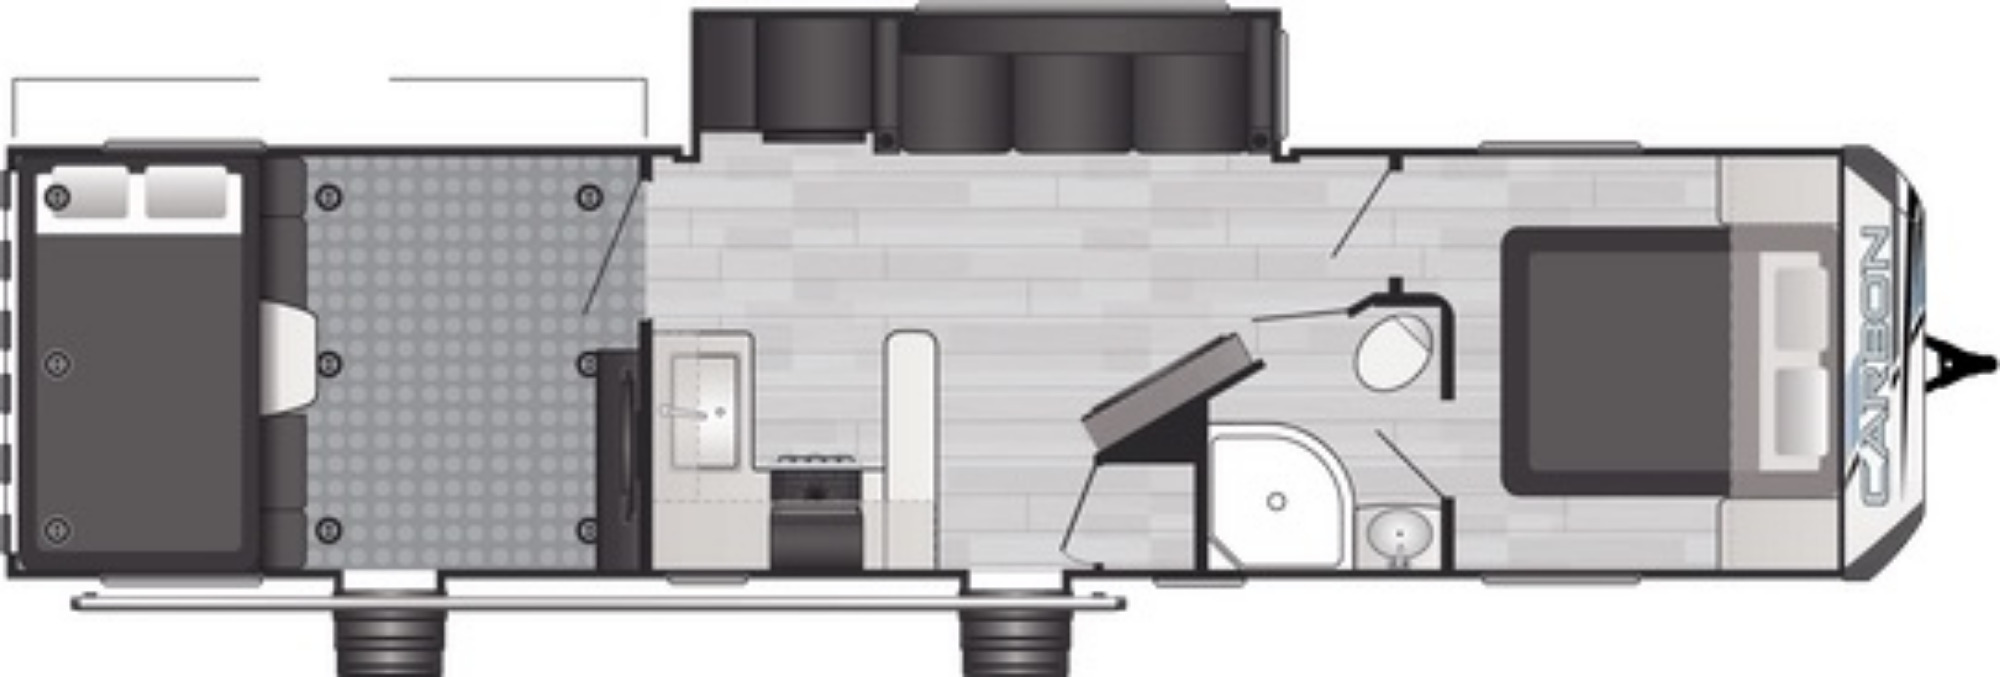 View Floor Plan for 2021 KEYSTONE CARBON 35